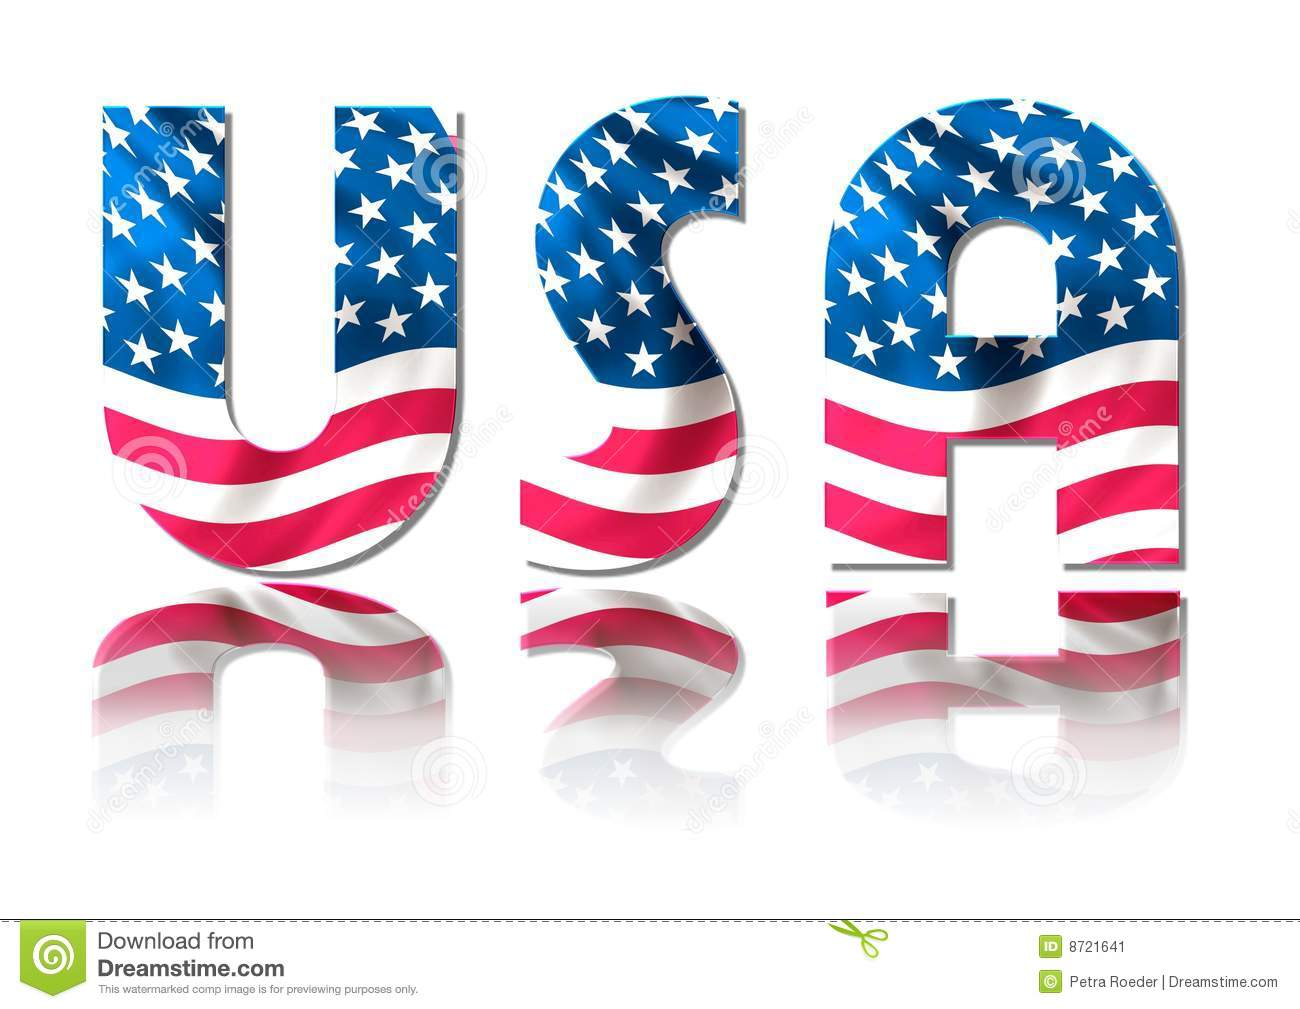 Usa Sign Stock Image - Image: 8721641